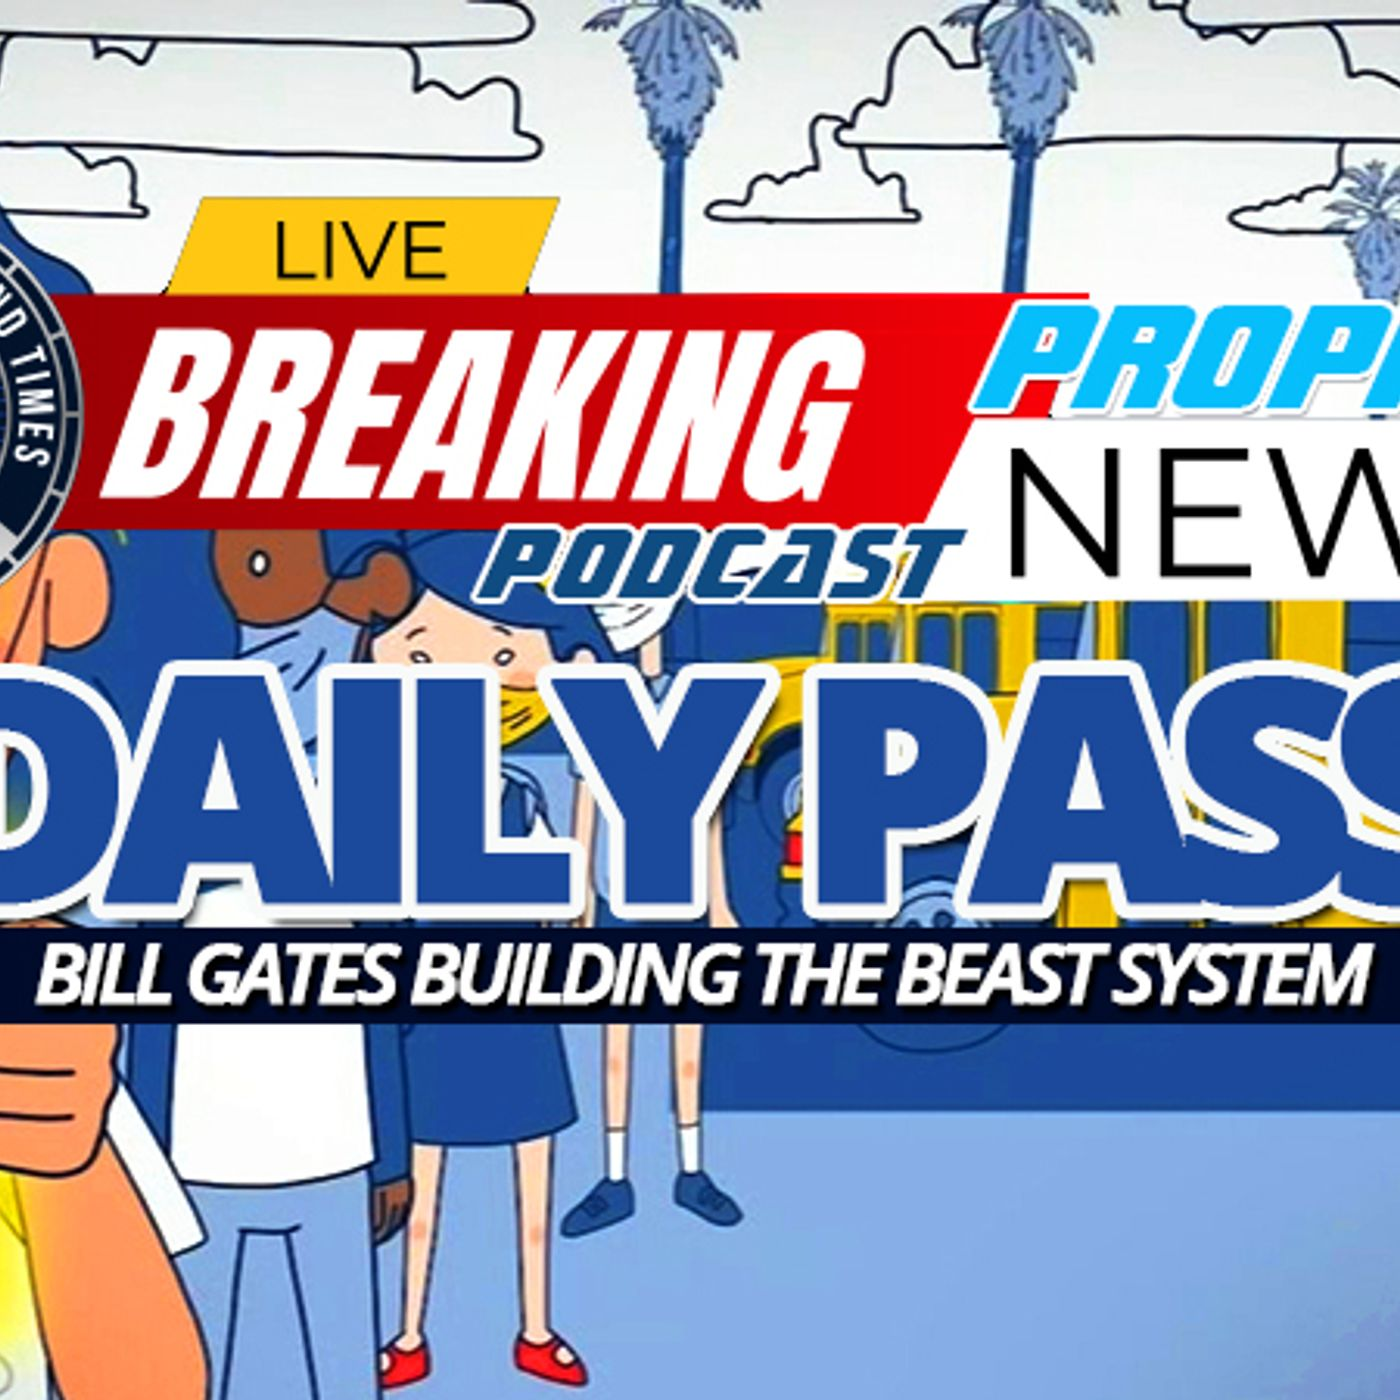 NTEB PROPHECY NEWS PODCAST: As Promised, Microsoft Has Rolled Out 'Daily Pass' To Track Half Million Students In LA Unified School District